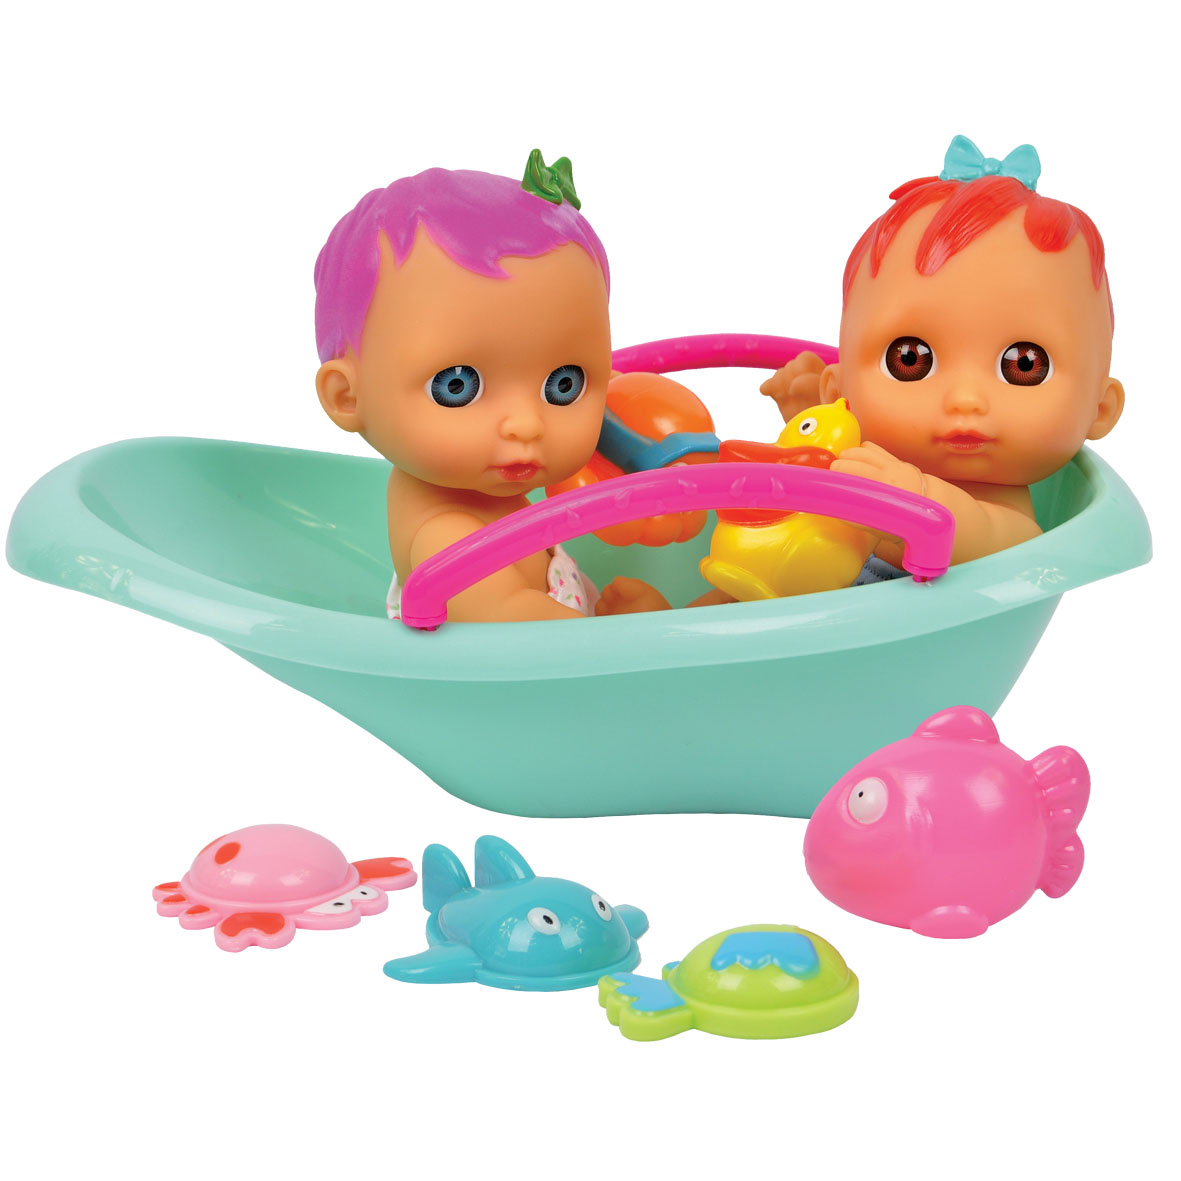 Little Chuckles Bath Fun Baby